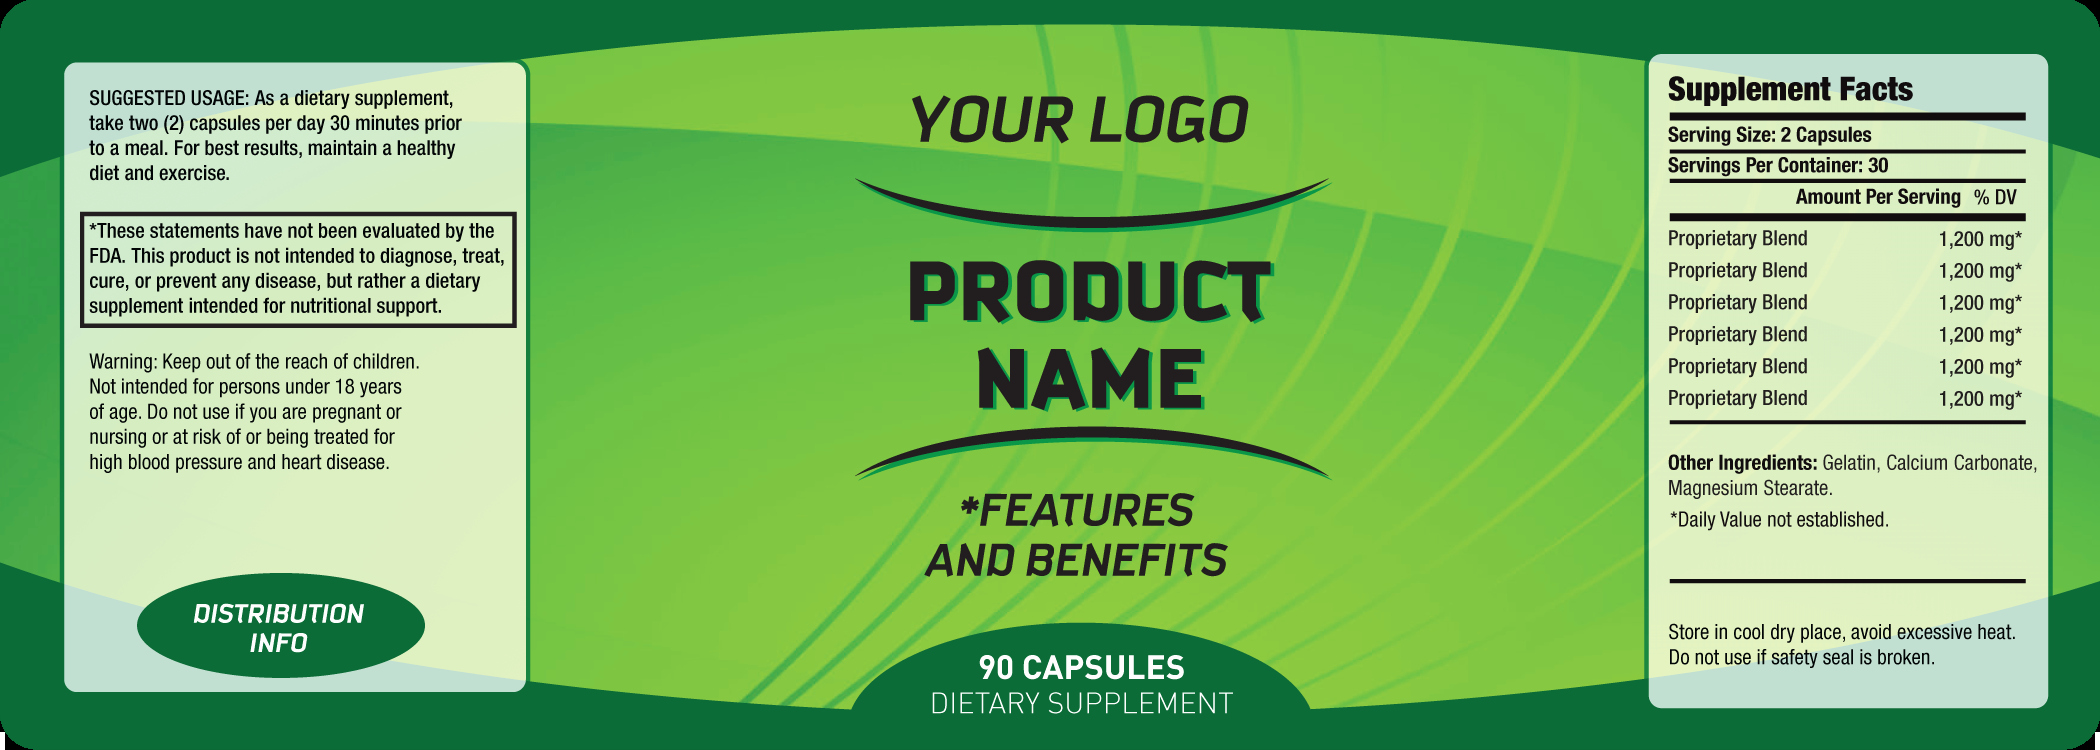 Supplement Facts Label Template Inspirational 6 Free Label Templates Excel Pdf formats